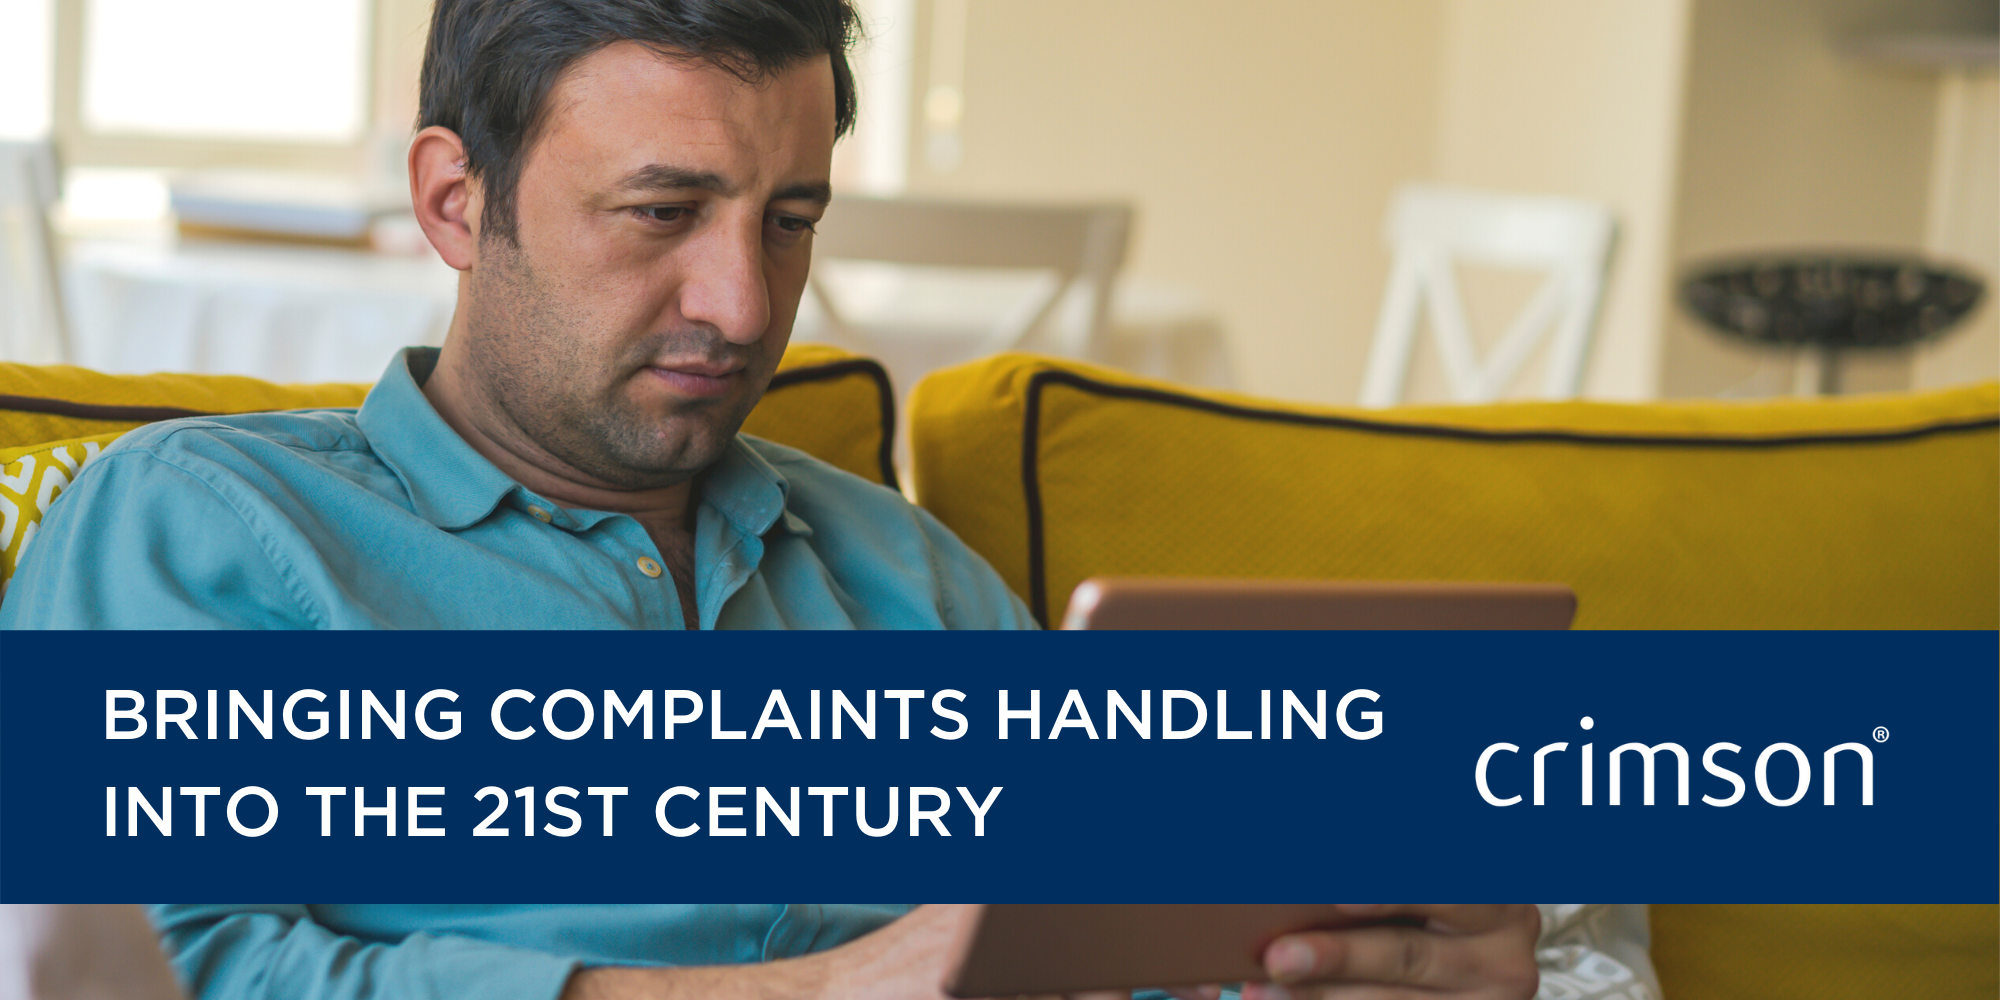 Bringing complaints handling into the 21st Century